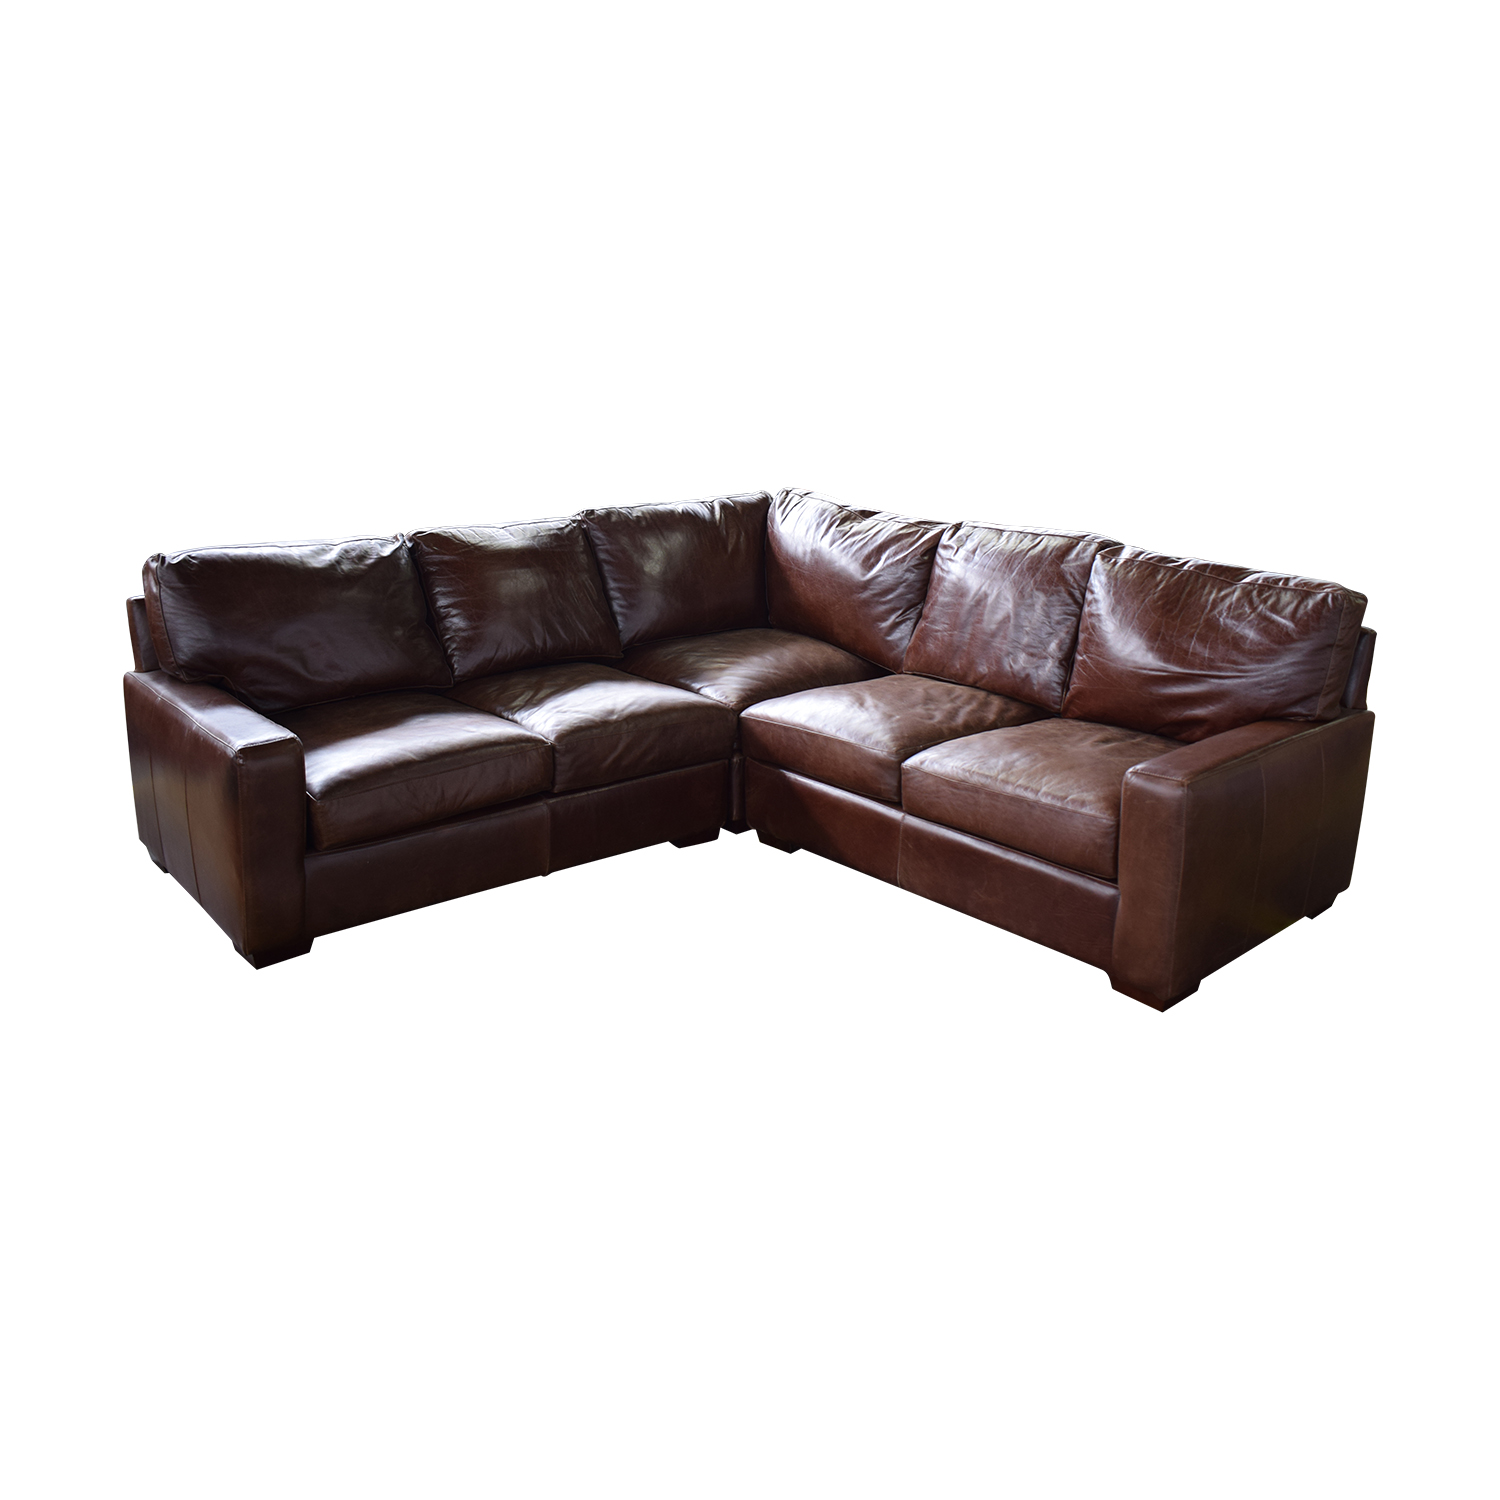 ABC Carpet & Home ABC Carpet & Home Leather Sectional nyc